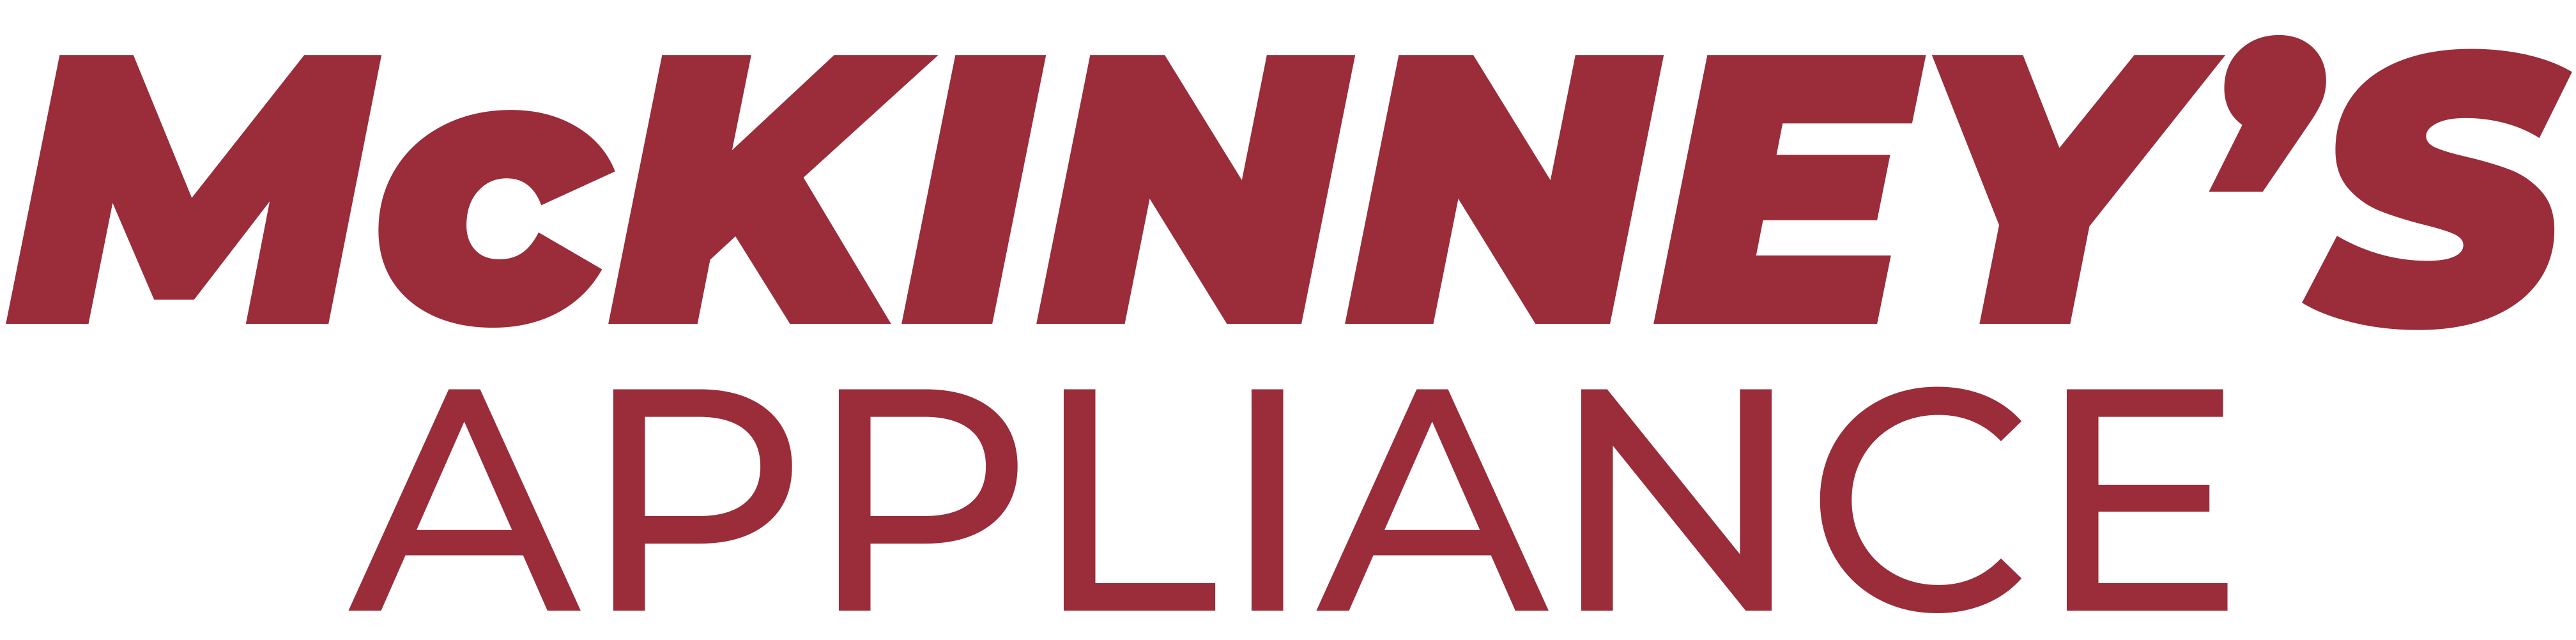 McKinney's Appliance Center Logo